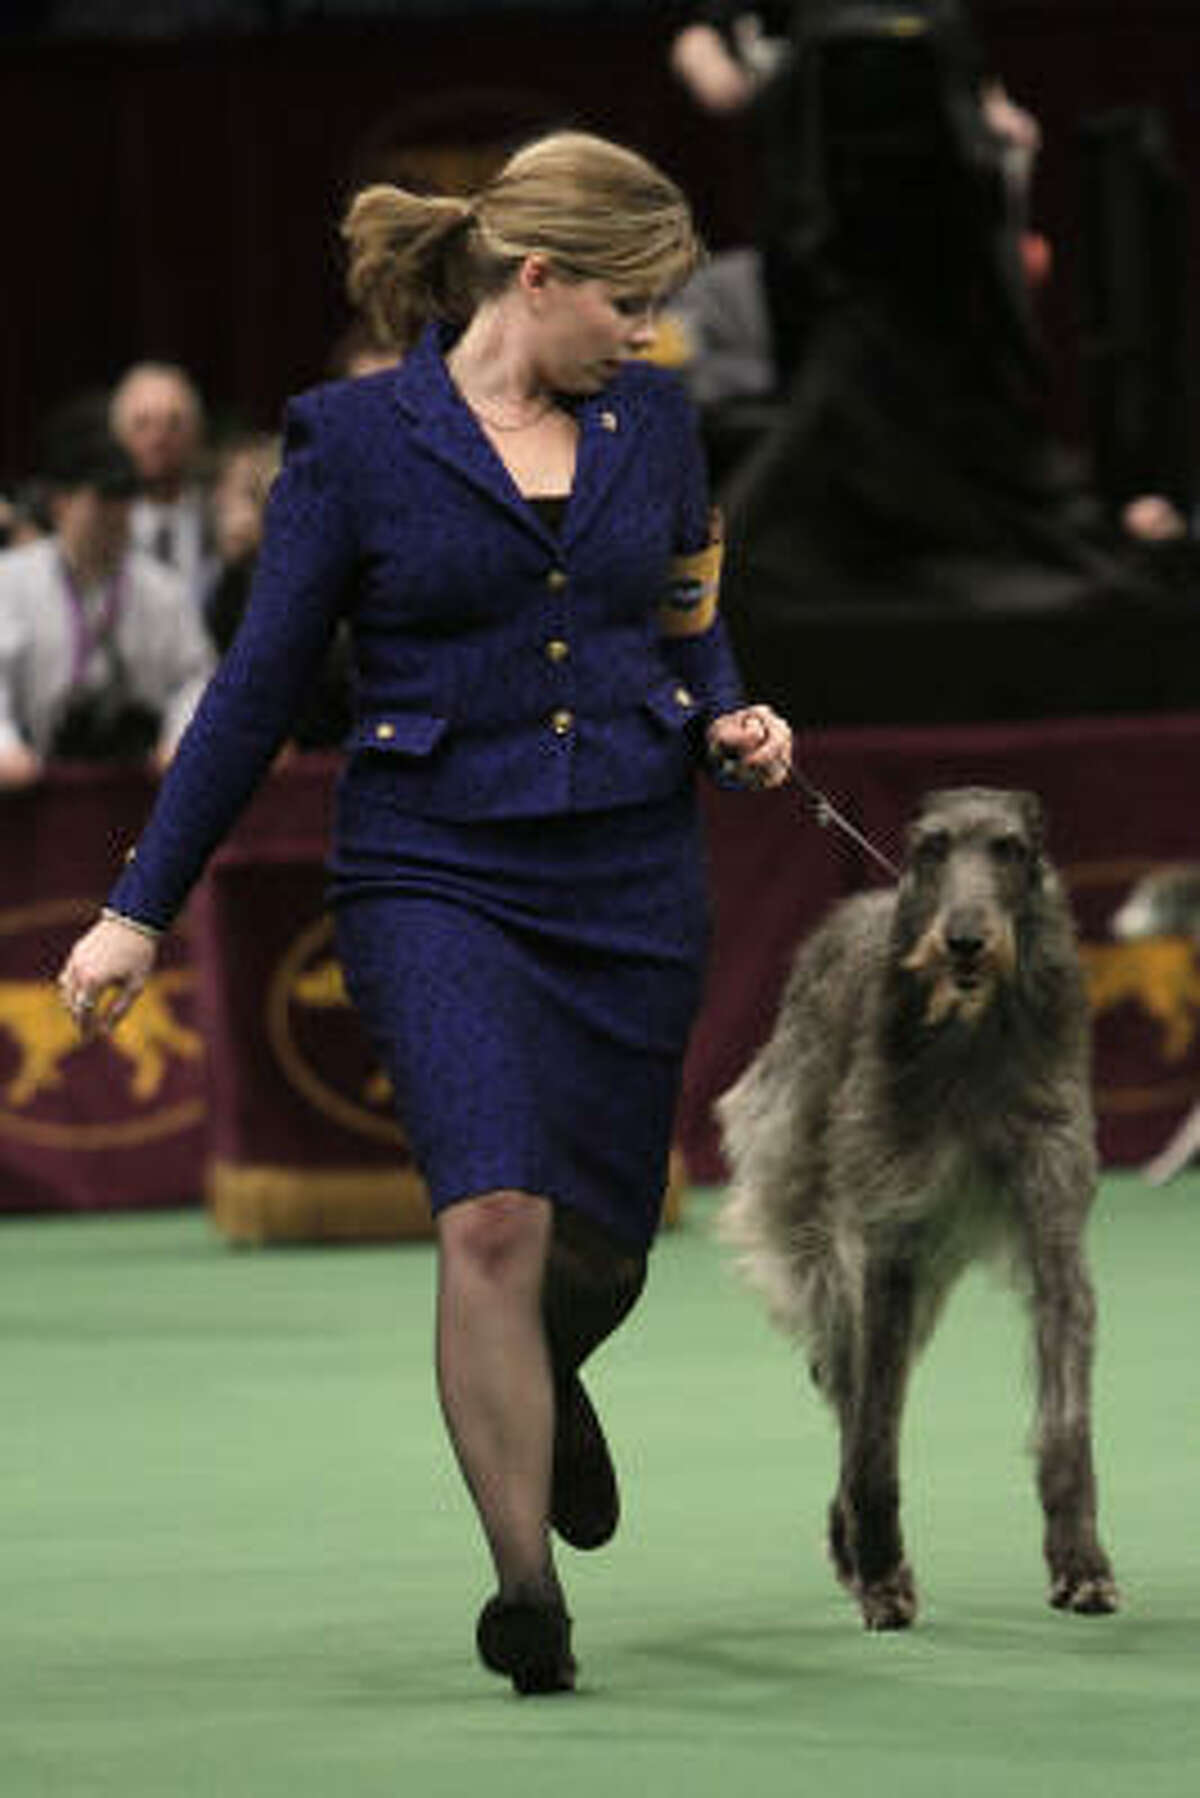 Scottish deerhound Foxcliffe Hickory Wind won Best of Show on Tuesday and the hound division earlier.